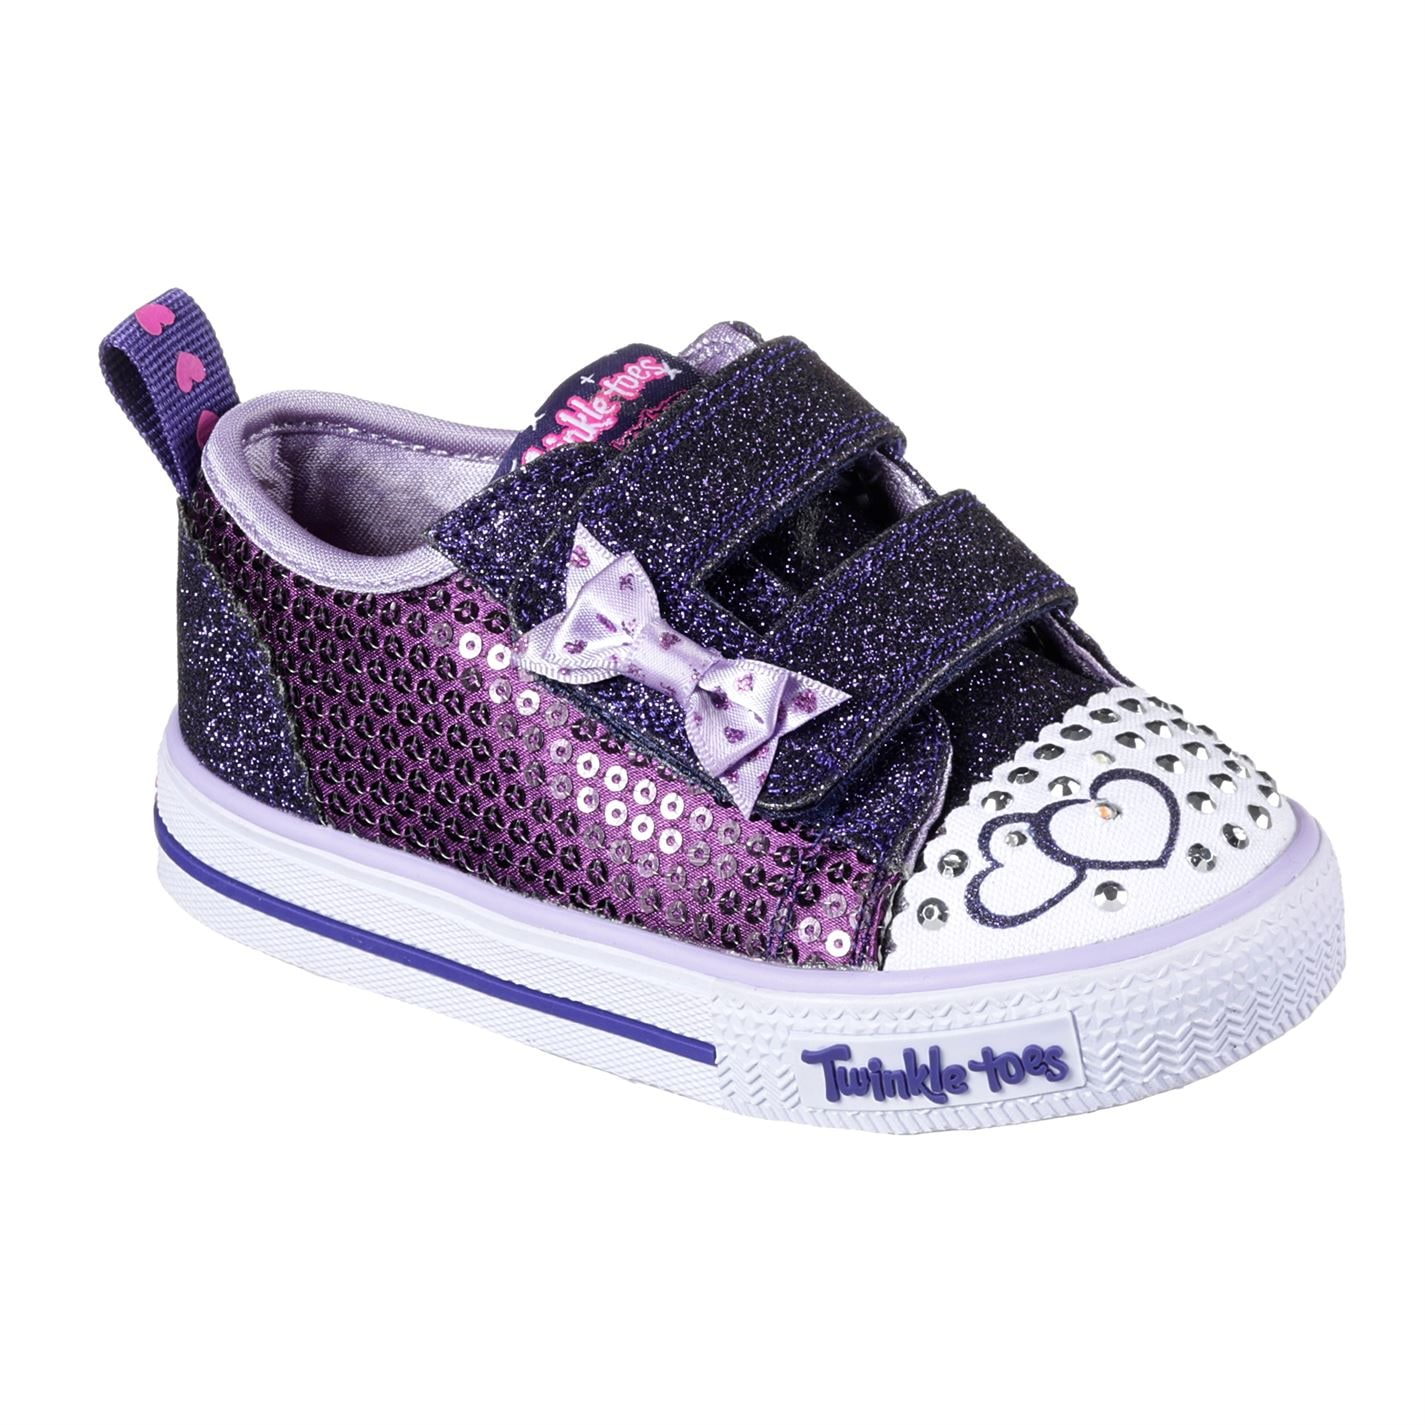 Skechers Twinkle Toes Itsy Bitsy Shoes Infant Girls Purple